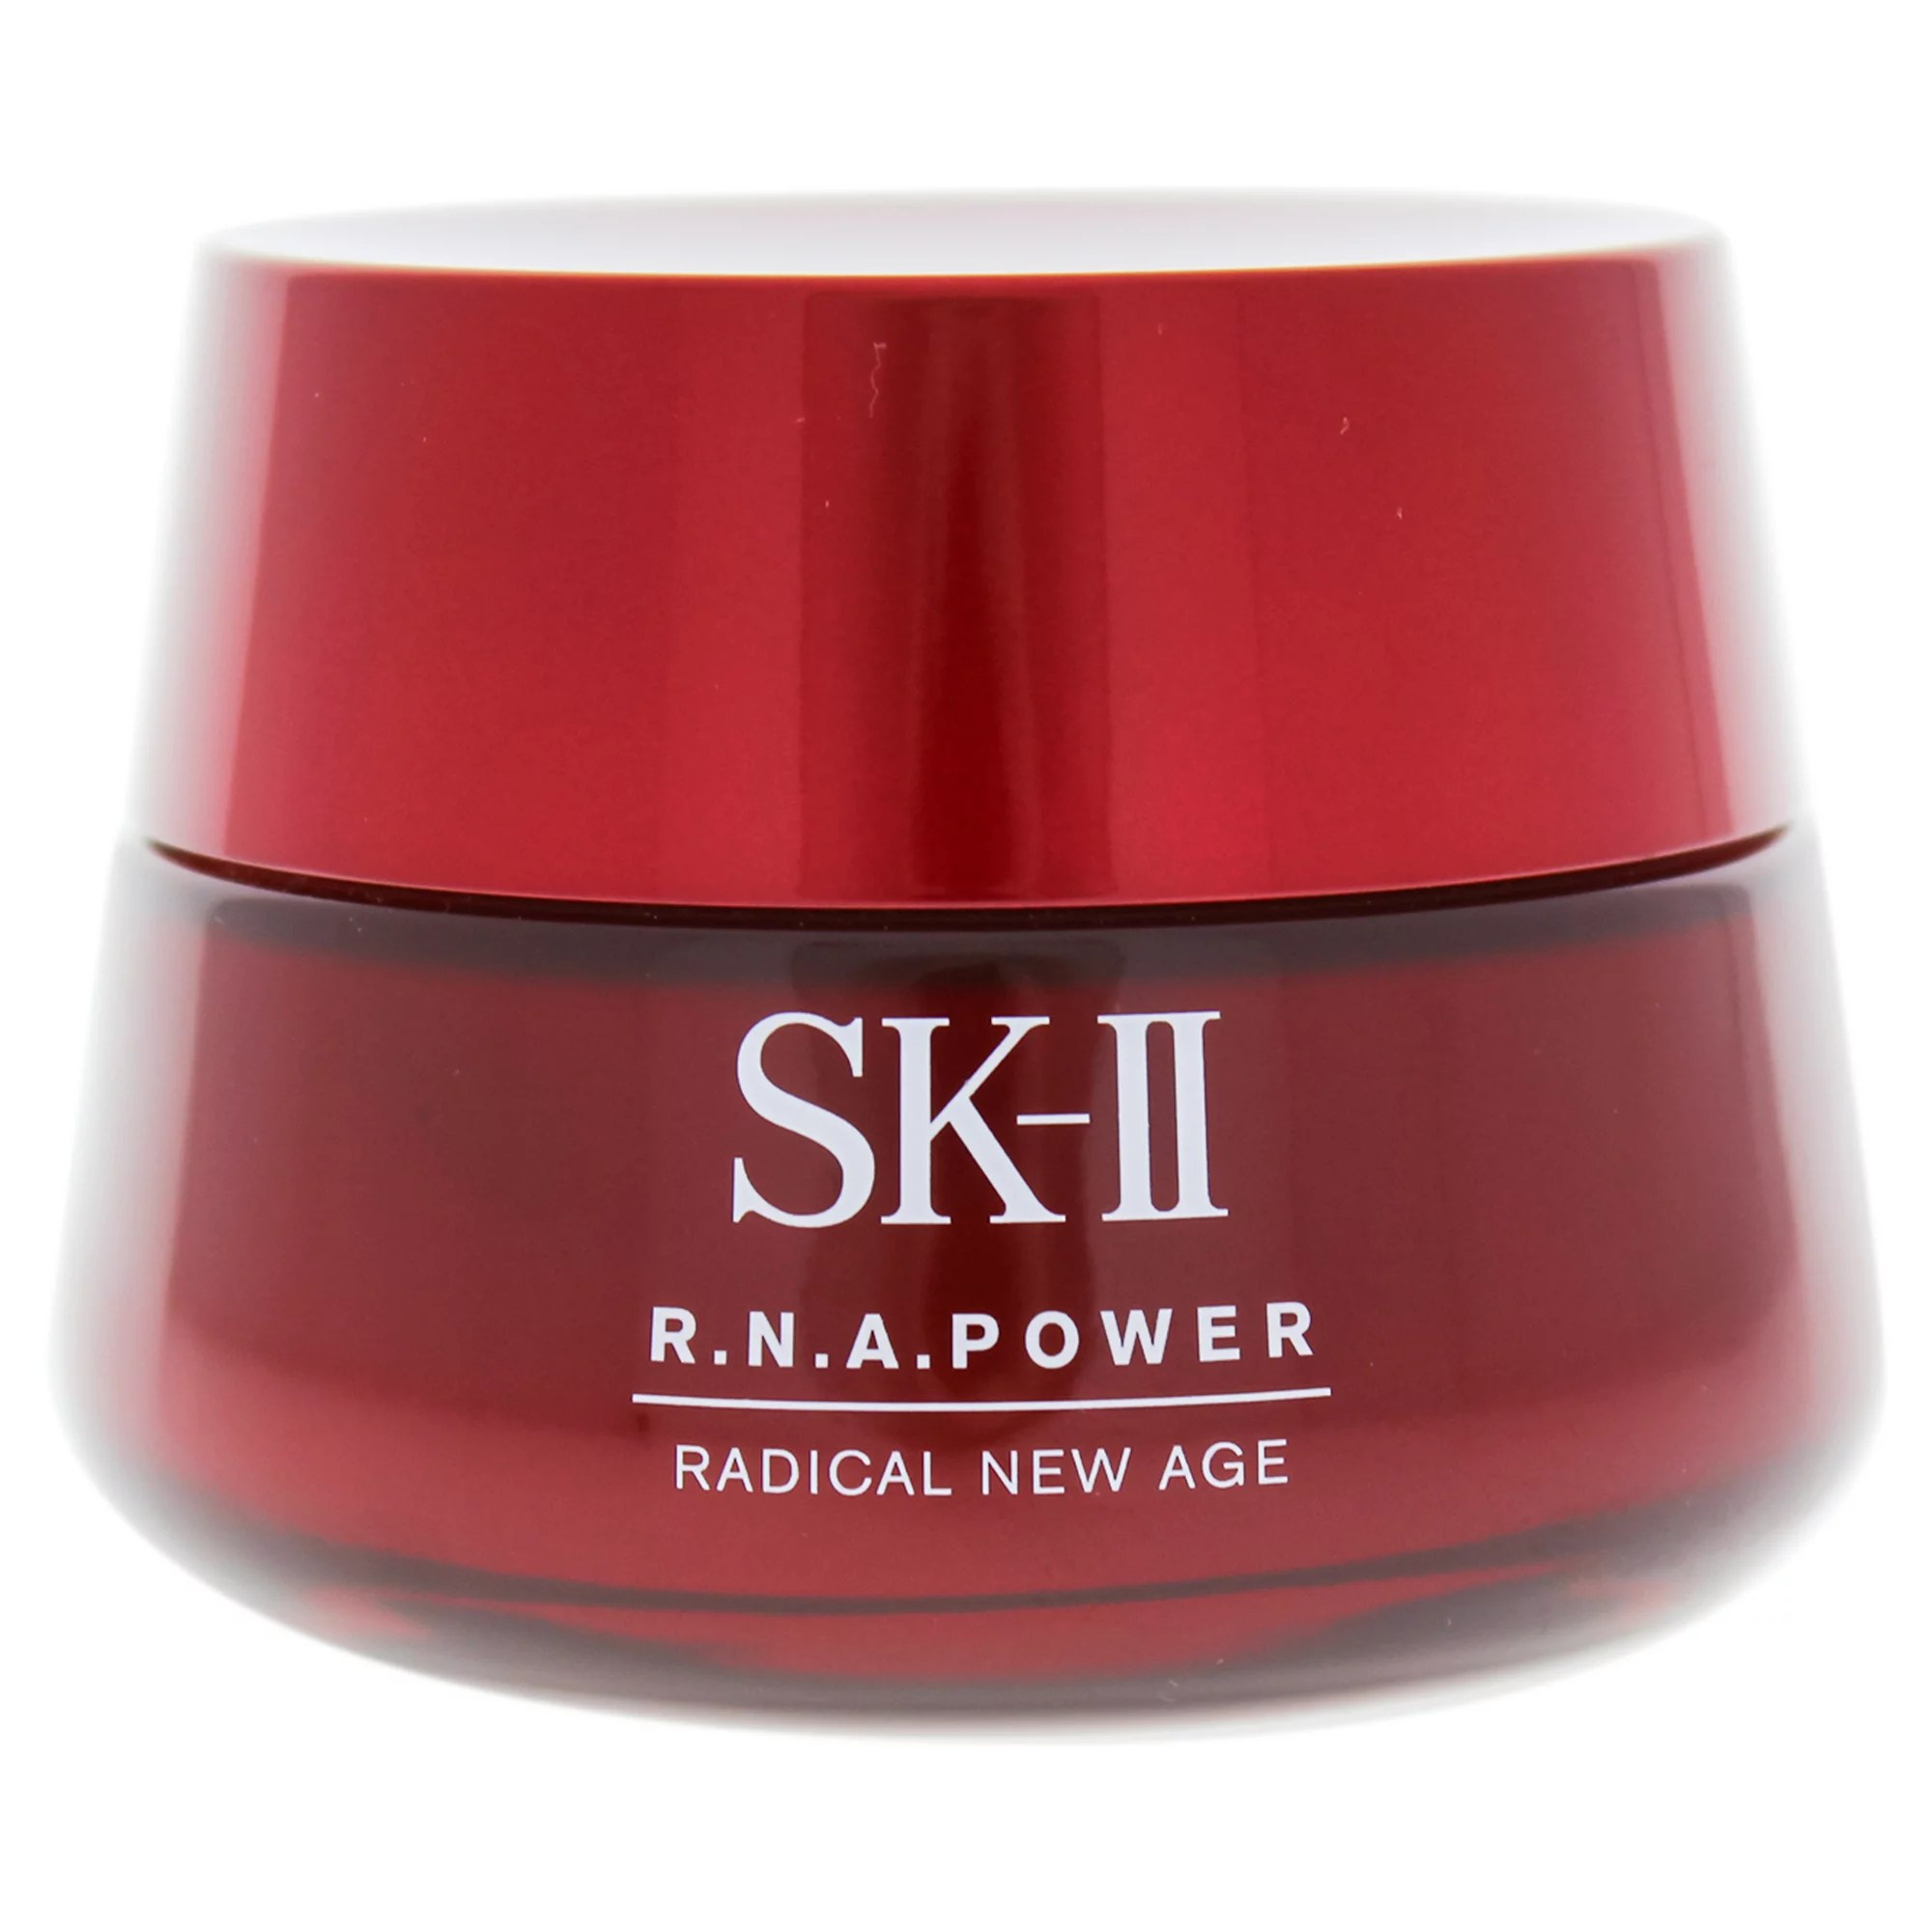 (5 Value) SK-II R.N.A.POWER Radical New Age Face Cream, 2.7 oz